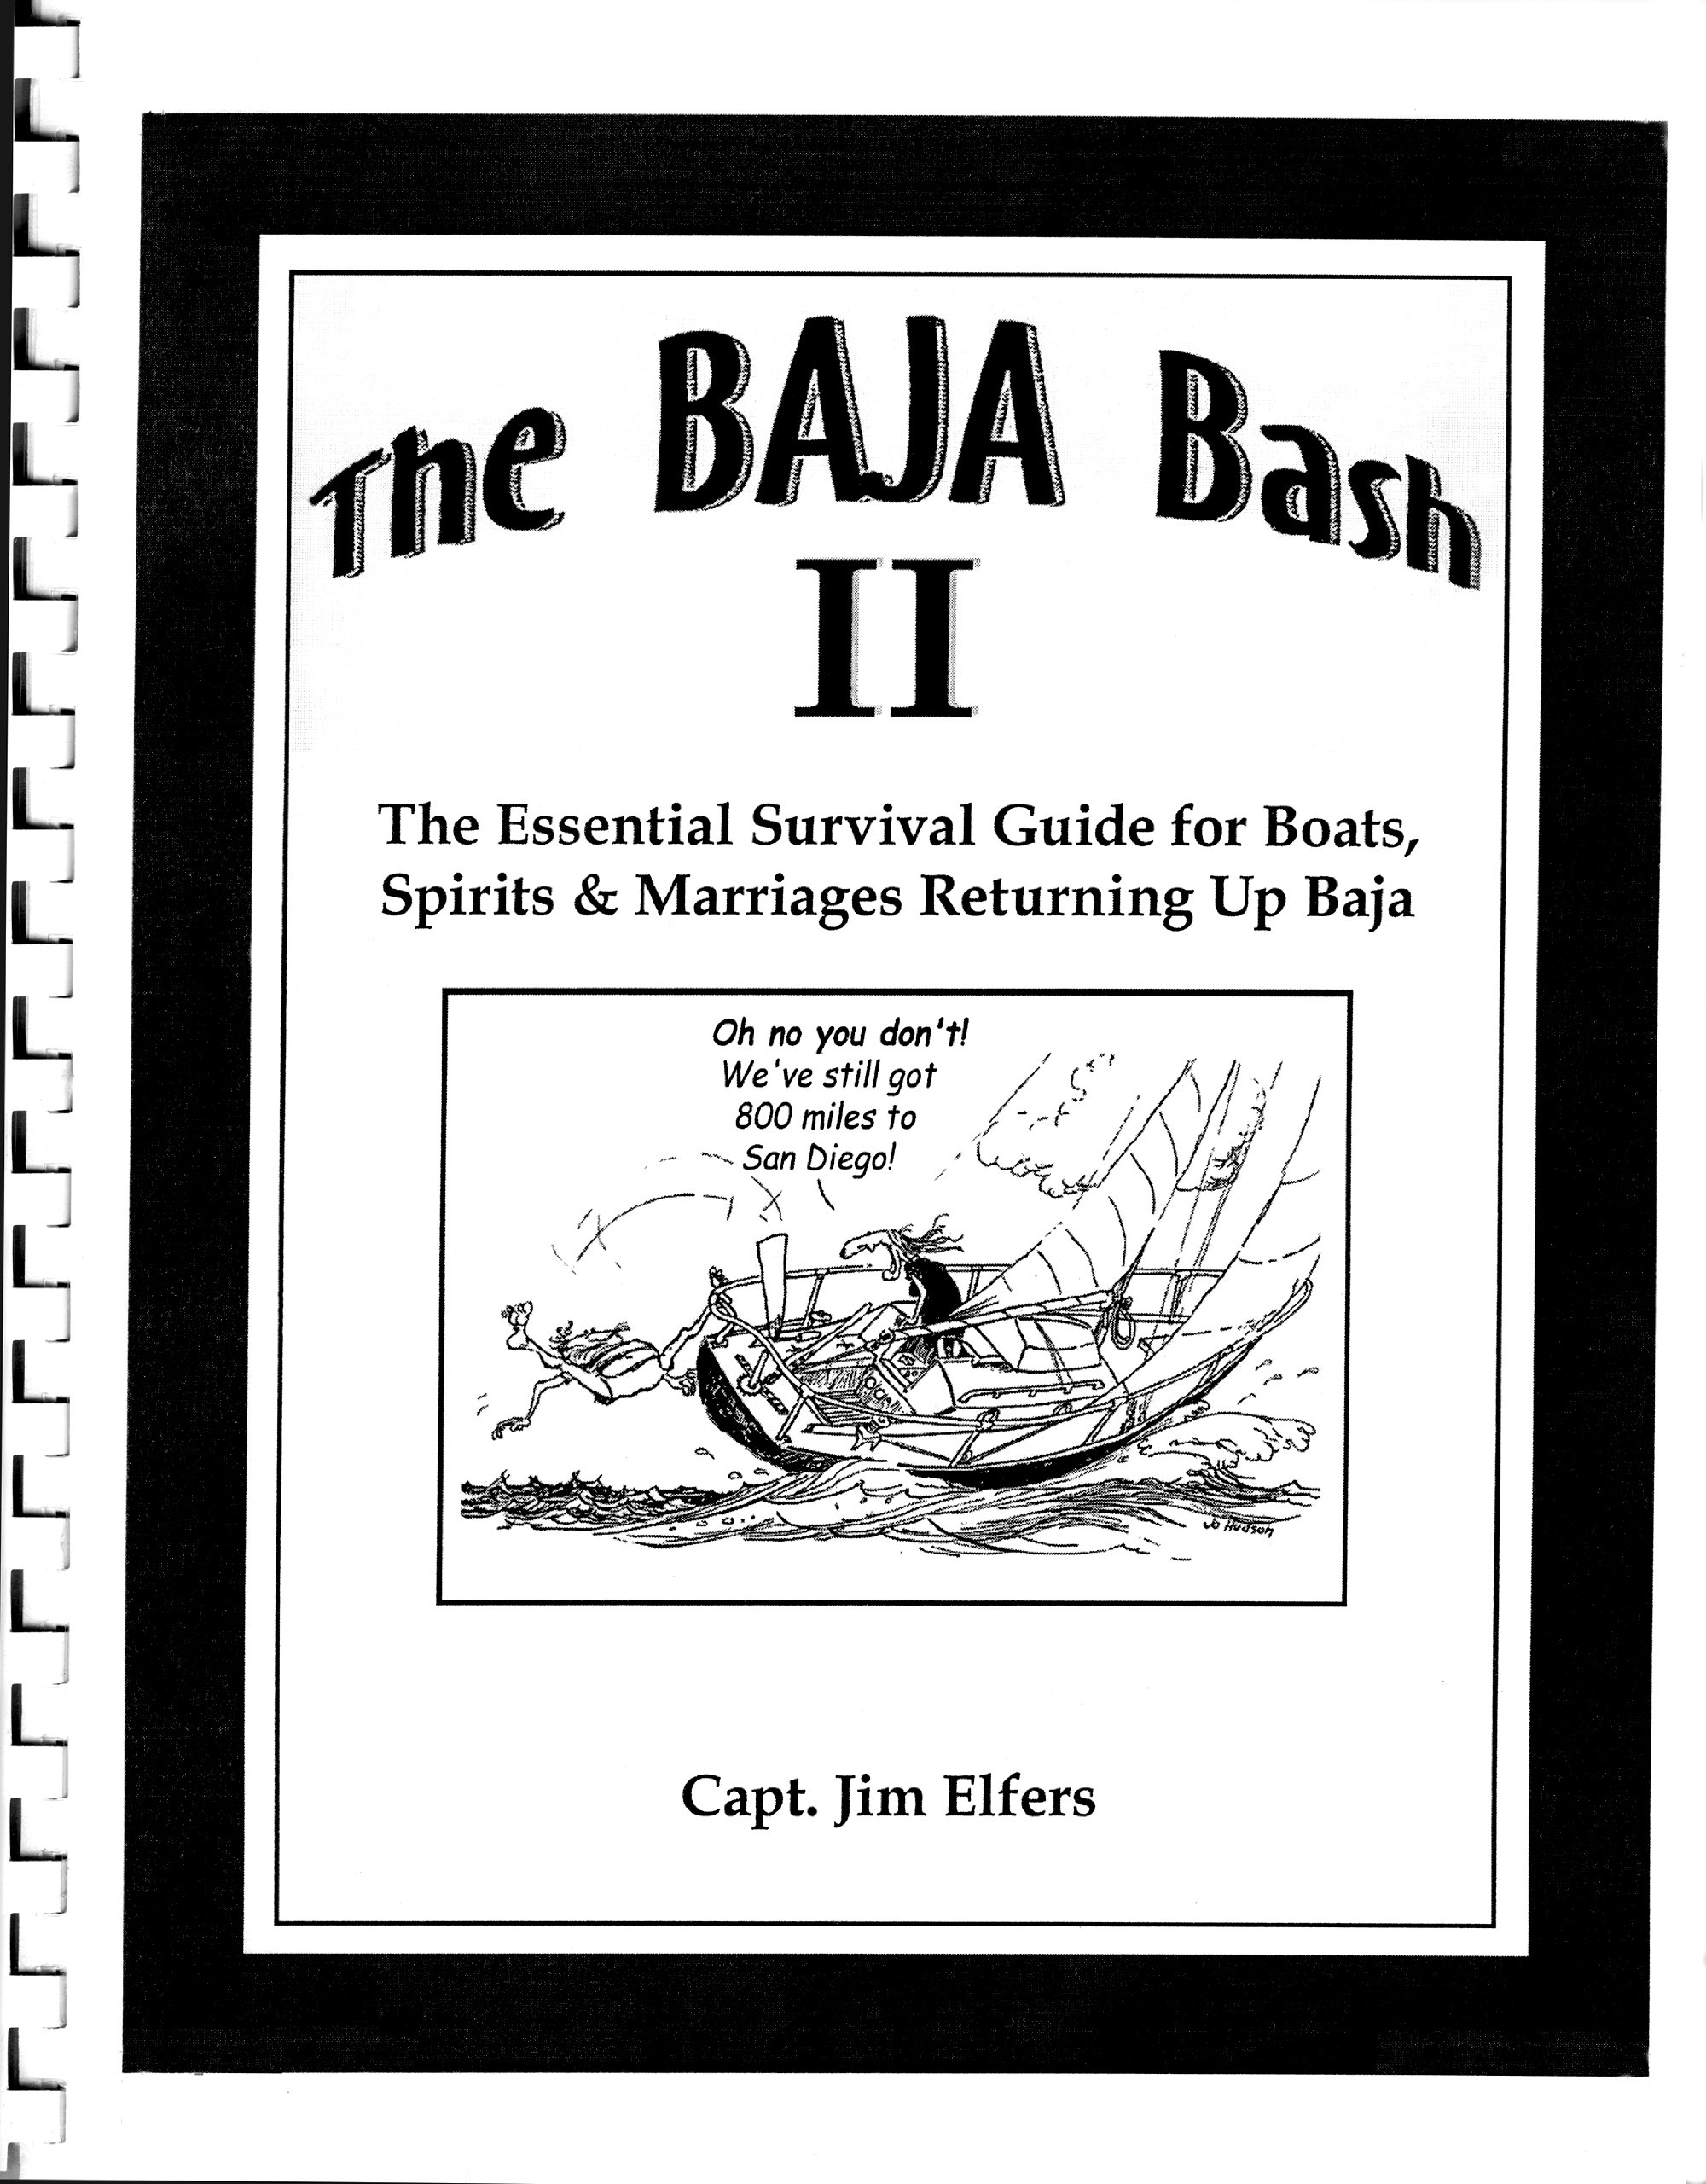 The Baja Bash II ebook